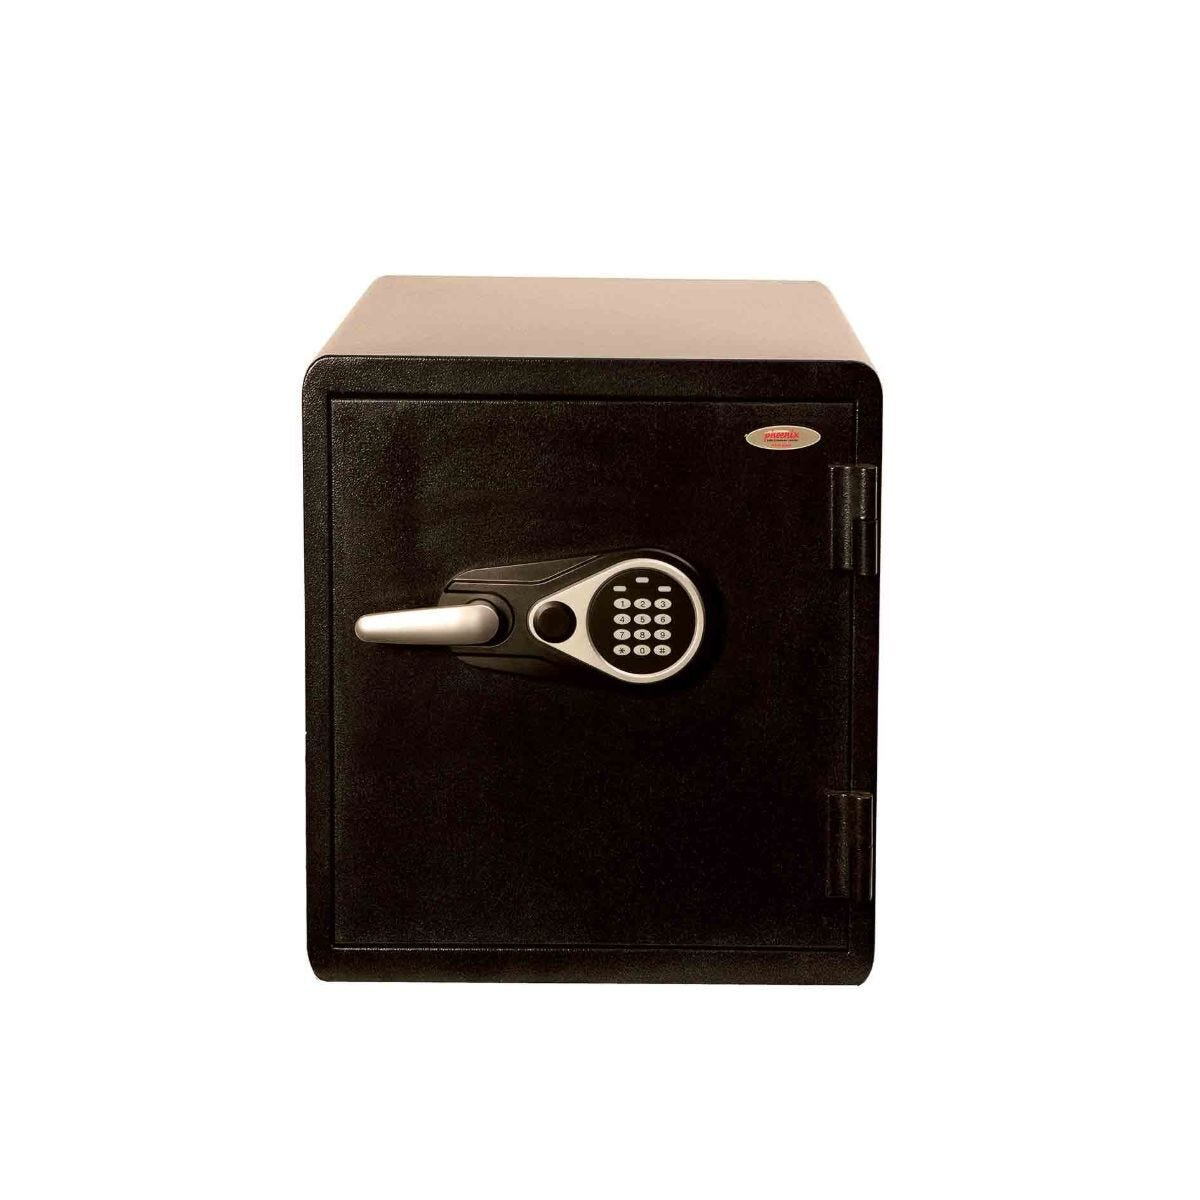 Phoenix Titan Aqua FS1293E Water Fire and Security Safe with Electronic Lock Size 3